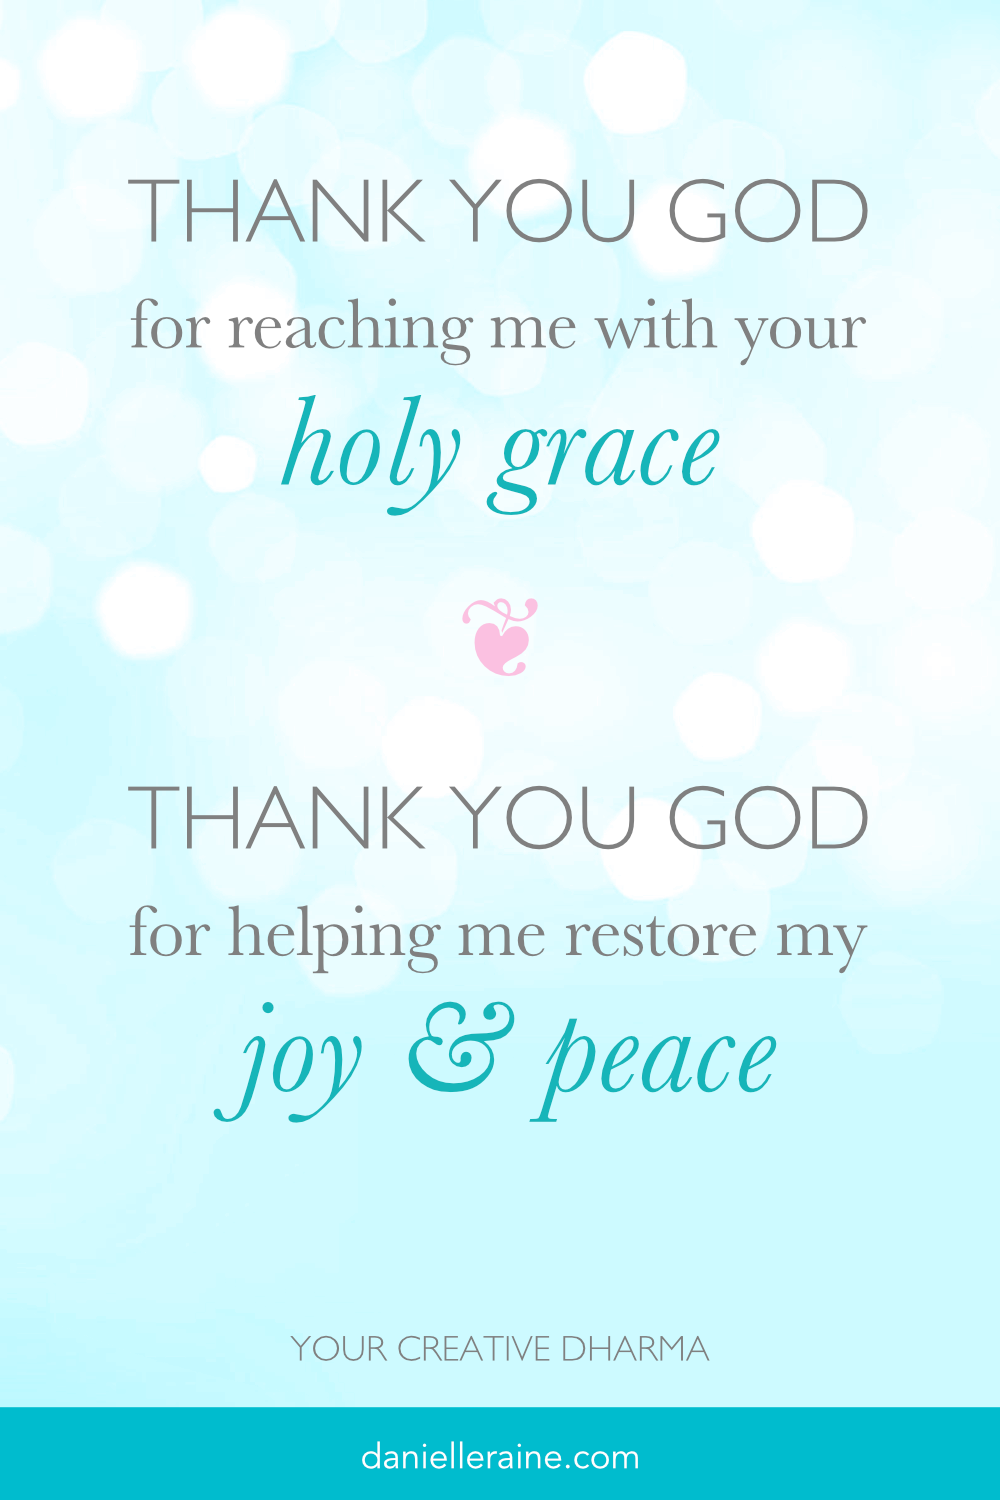 Gratitude prayer for grace joy peace - from your creative dharma